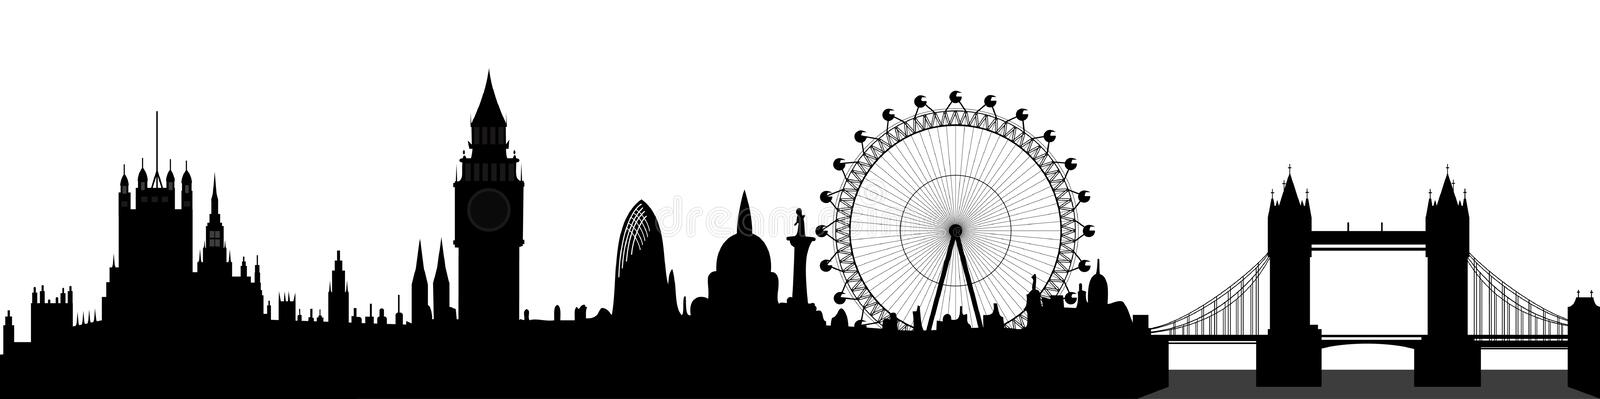 London skyline - vector royalty free illustration